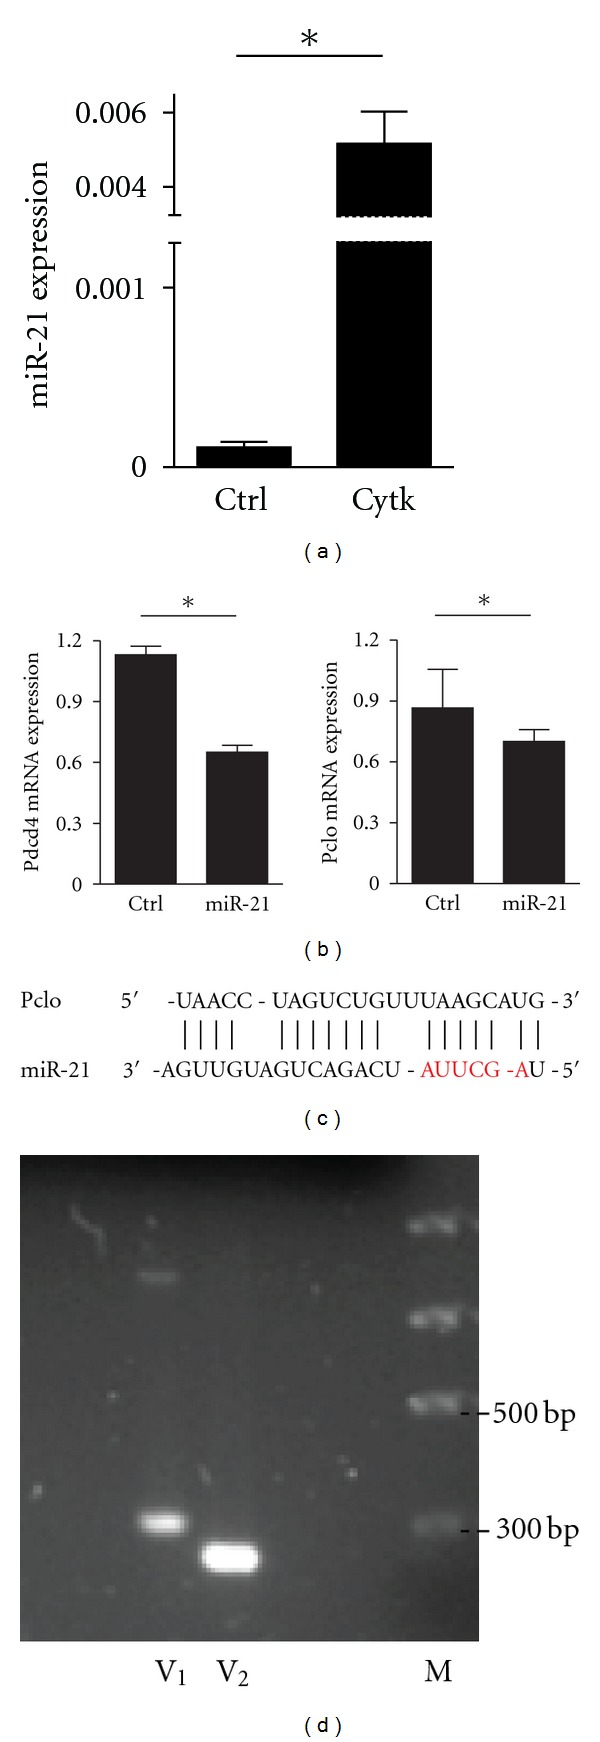 Overexpression of miR-21 regulates endogenous Pdcd4 and Pclo mRNAs. (a) MIN6 cells were treated 24 hours with cytokine cocktail IL-1 β (50 U/mL), TNF- α (2000 U/mL), and IFN γ (100 U/mL). The expression of miR-21 was assessed by <t>qRT-PCR.</t> (b) Overexpression of miR-21 mimic (300 nM) for 48 hs inhibits the expression of endogenous Pdcd4 and Pclo <t>mRNA.</t> Experiments shown in (a) and (b) are expressed as mean ± SD ( n = 5), * P